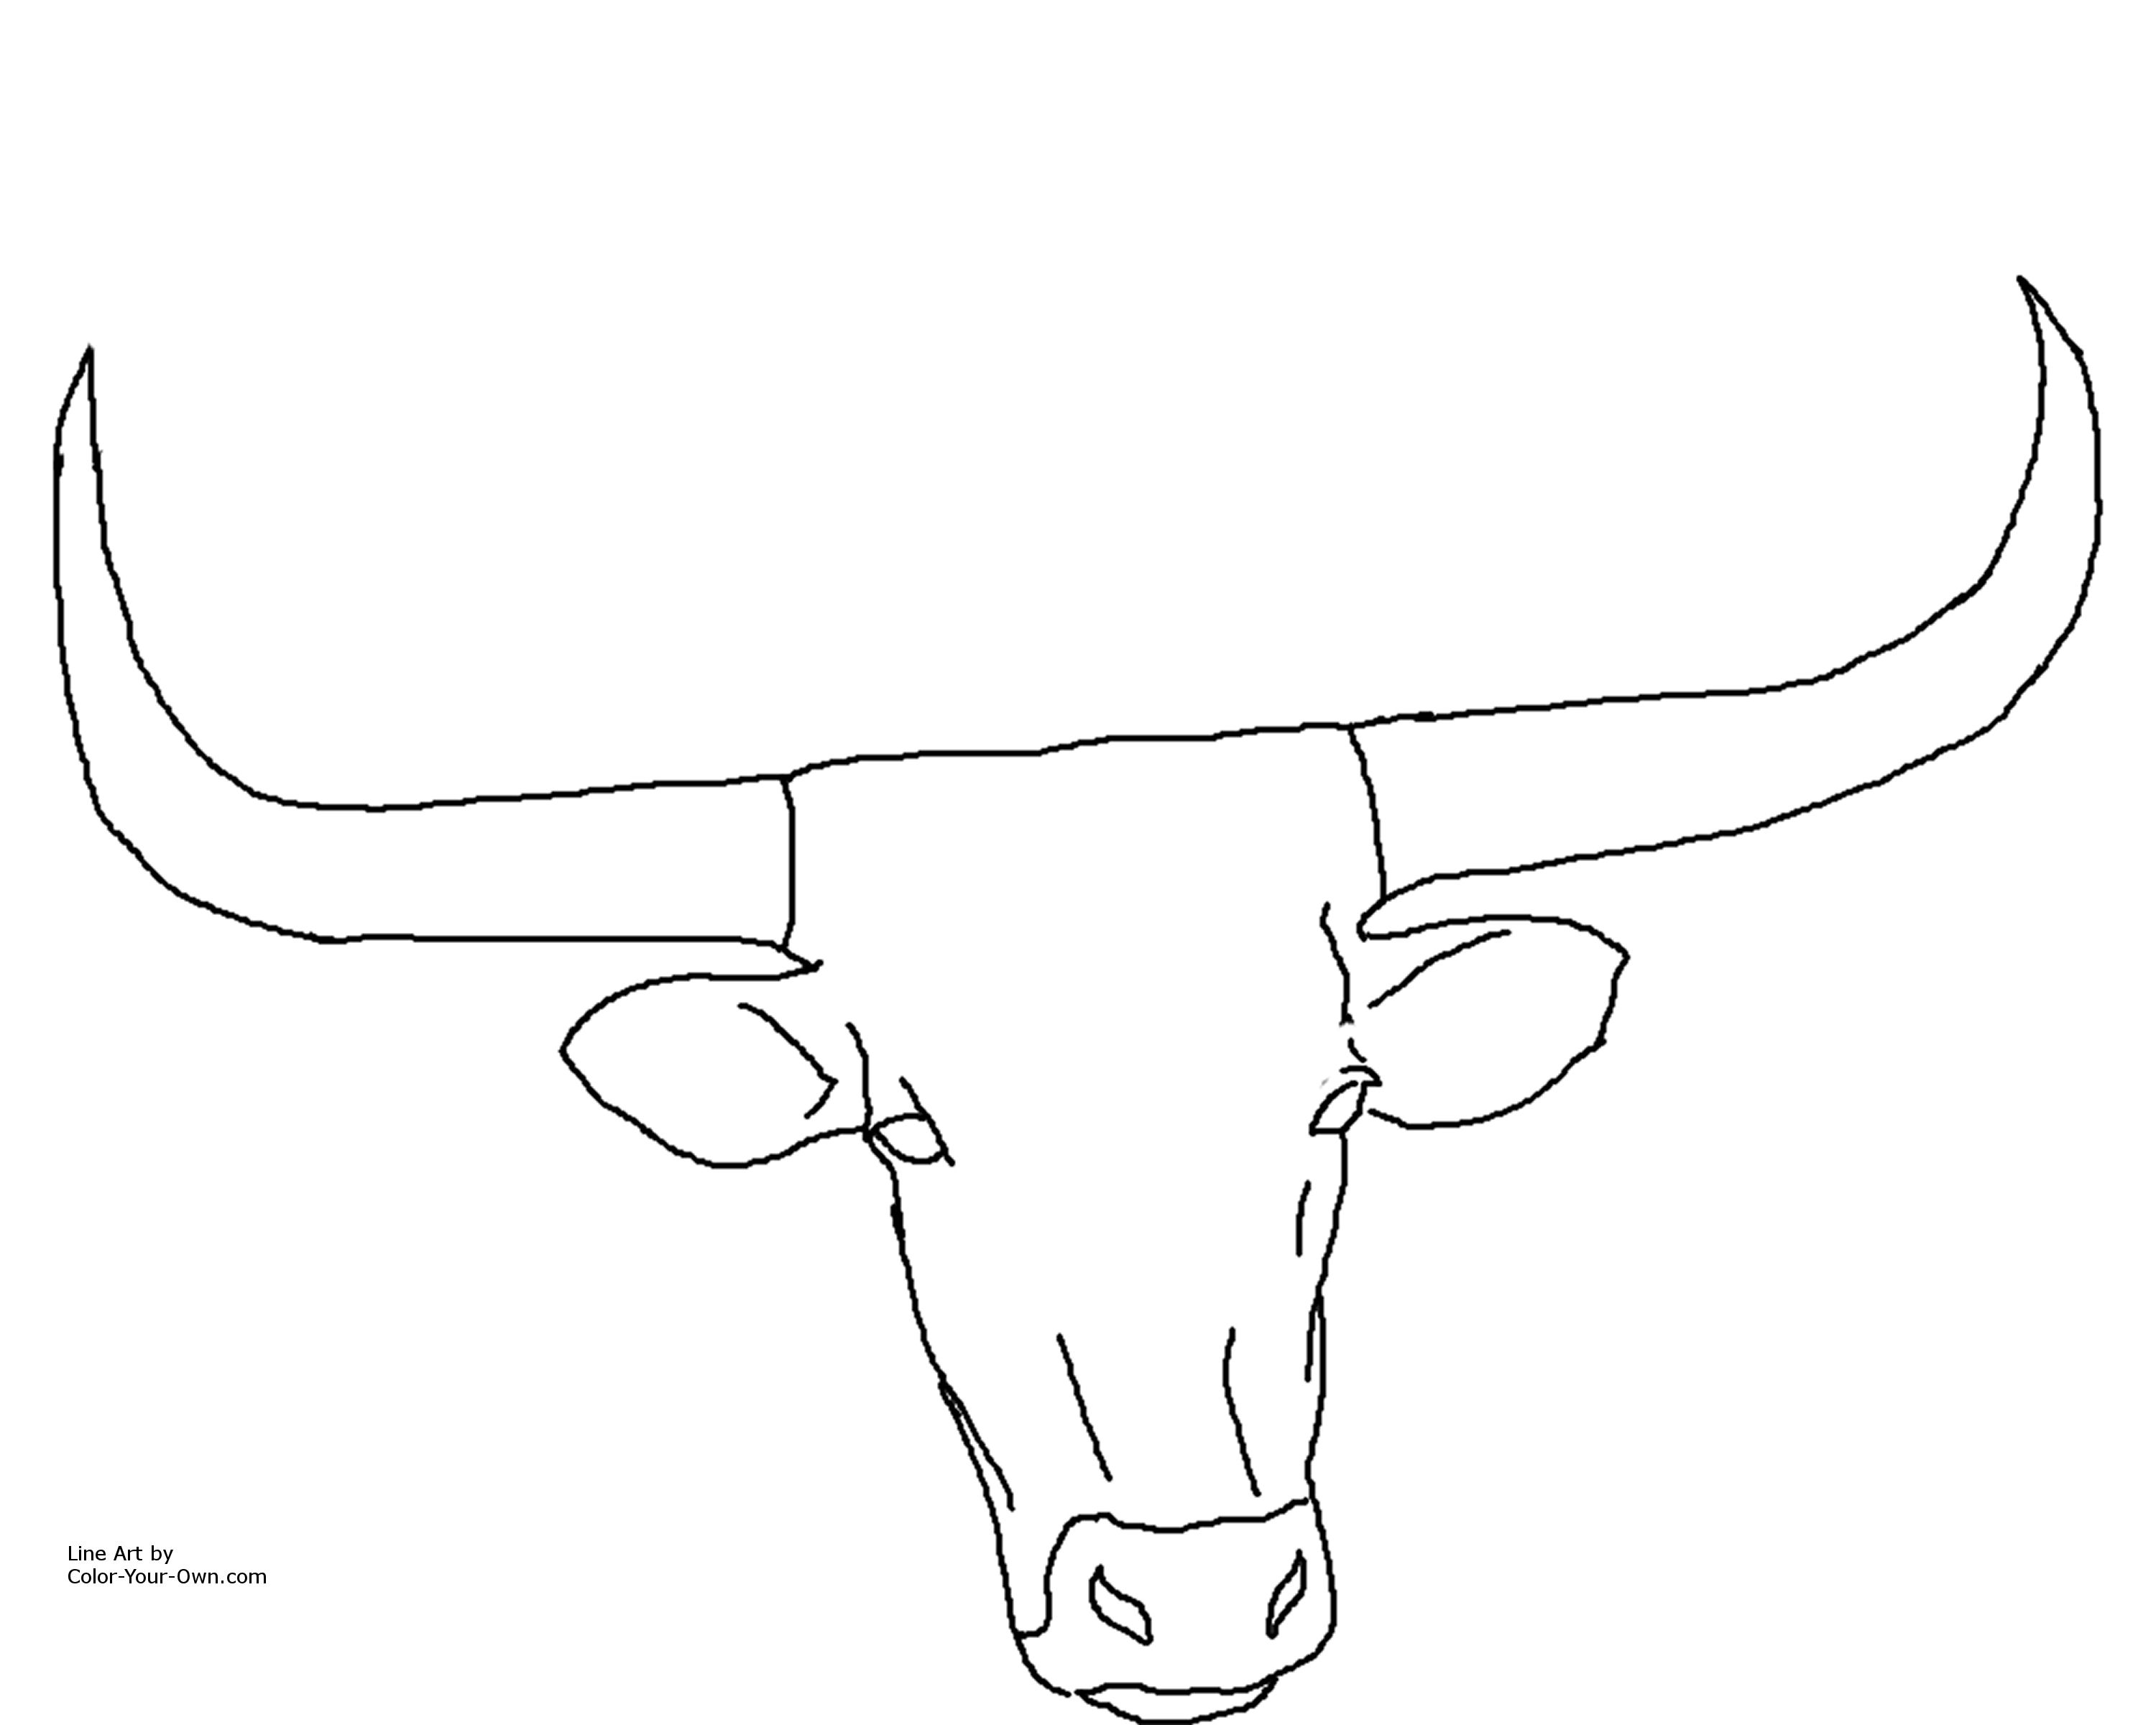 Cow Drawing Pic at GetDrawings.com | Free for personal use Cow ...